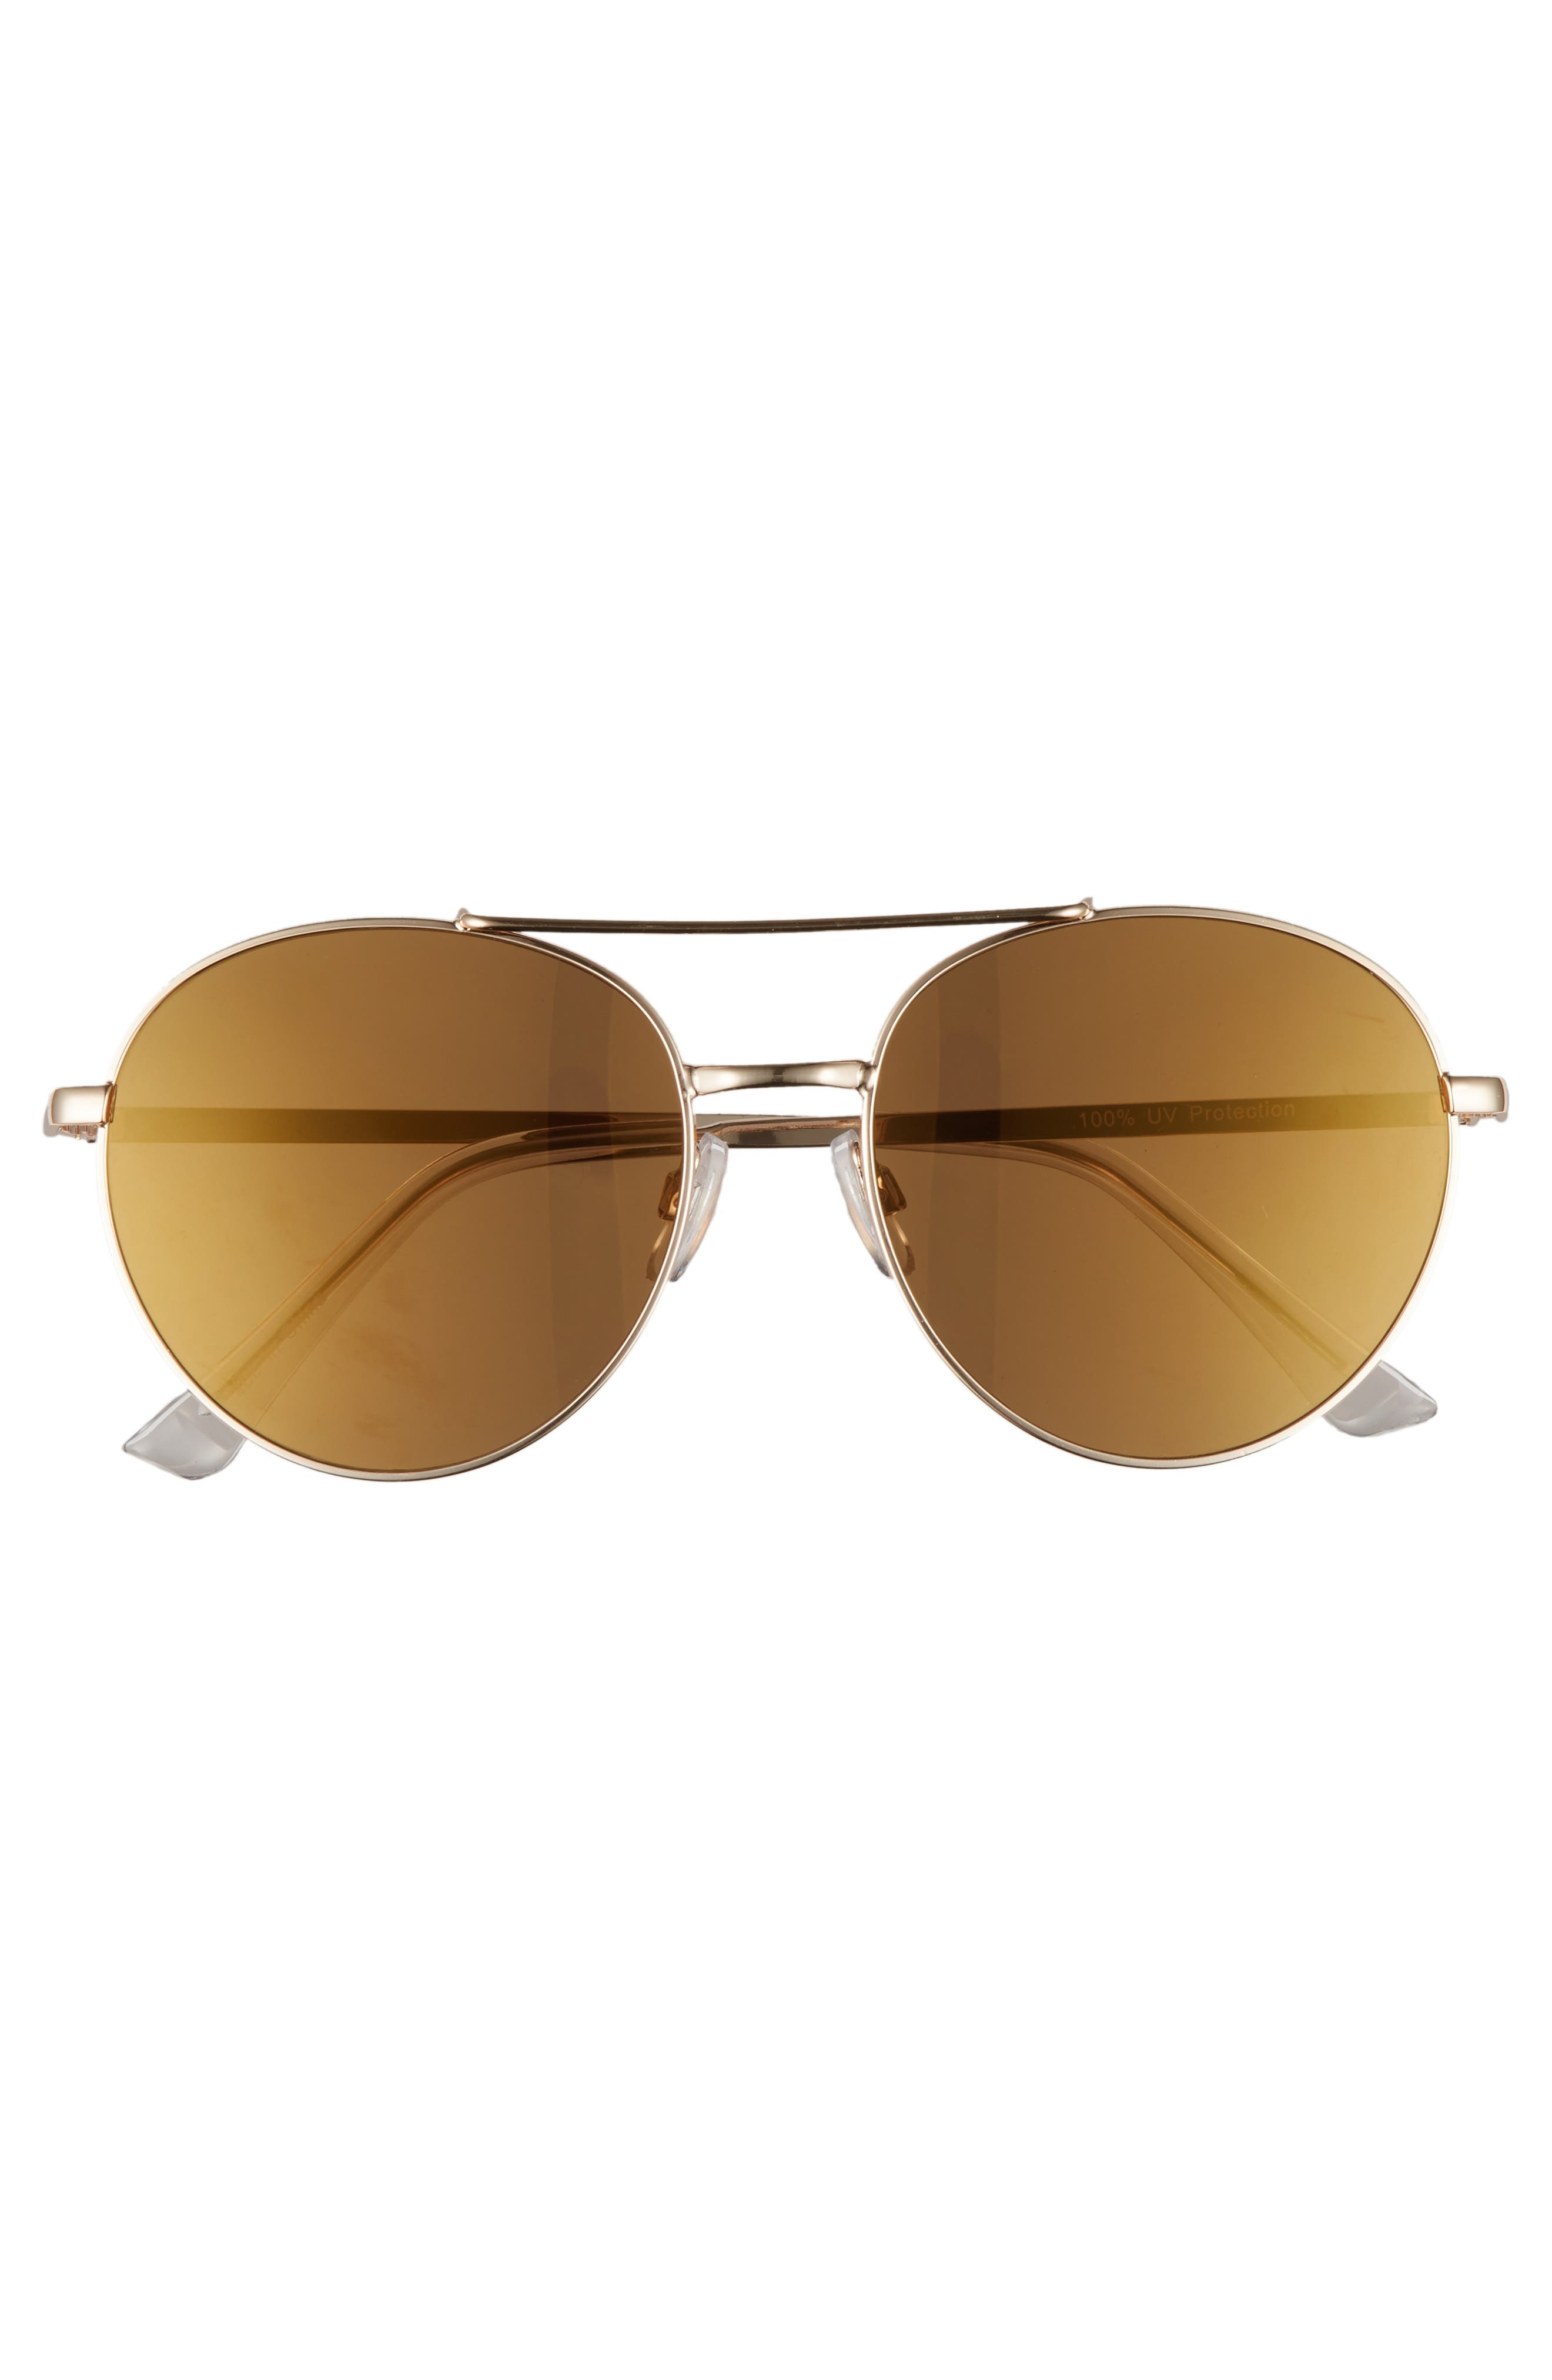 Lucky Seven 55mm Metal Aviator Sunglasses,                             Alternate thumbnail 3, color,                             710